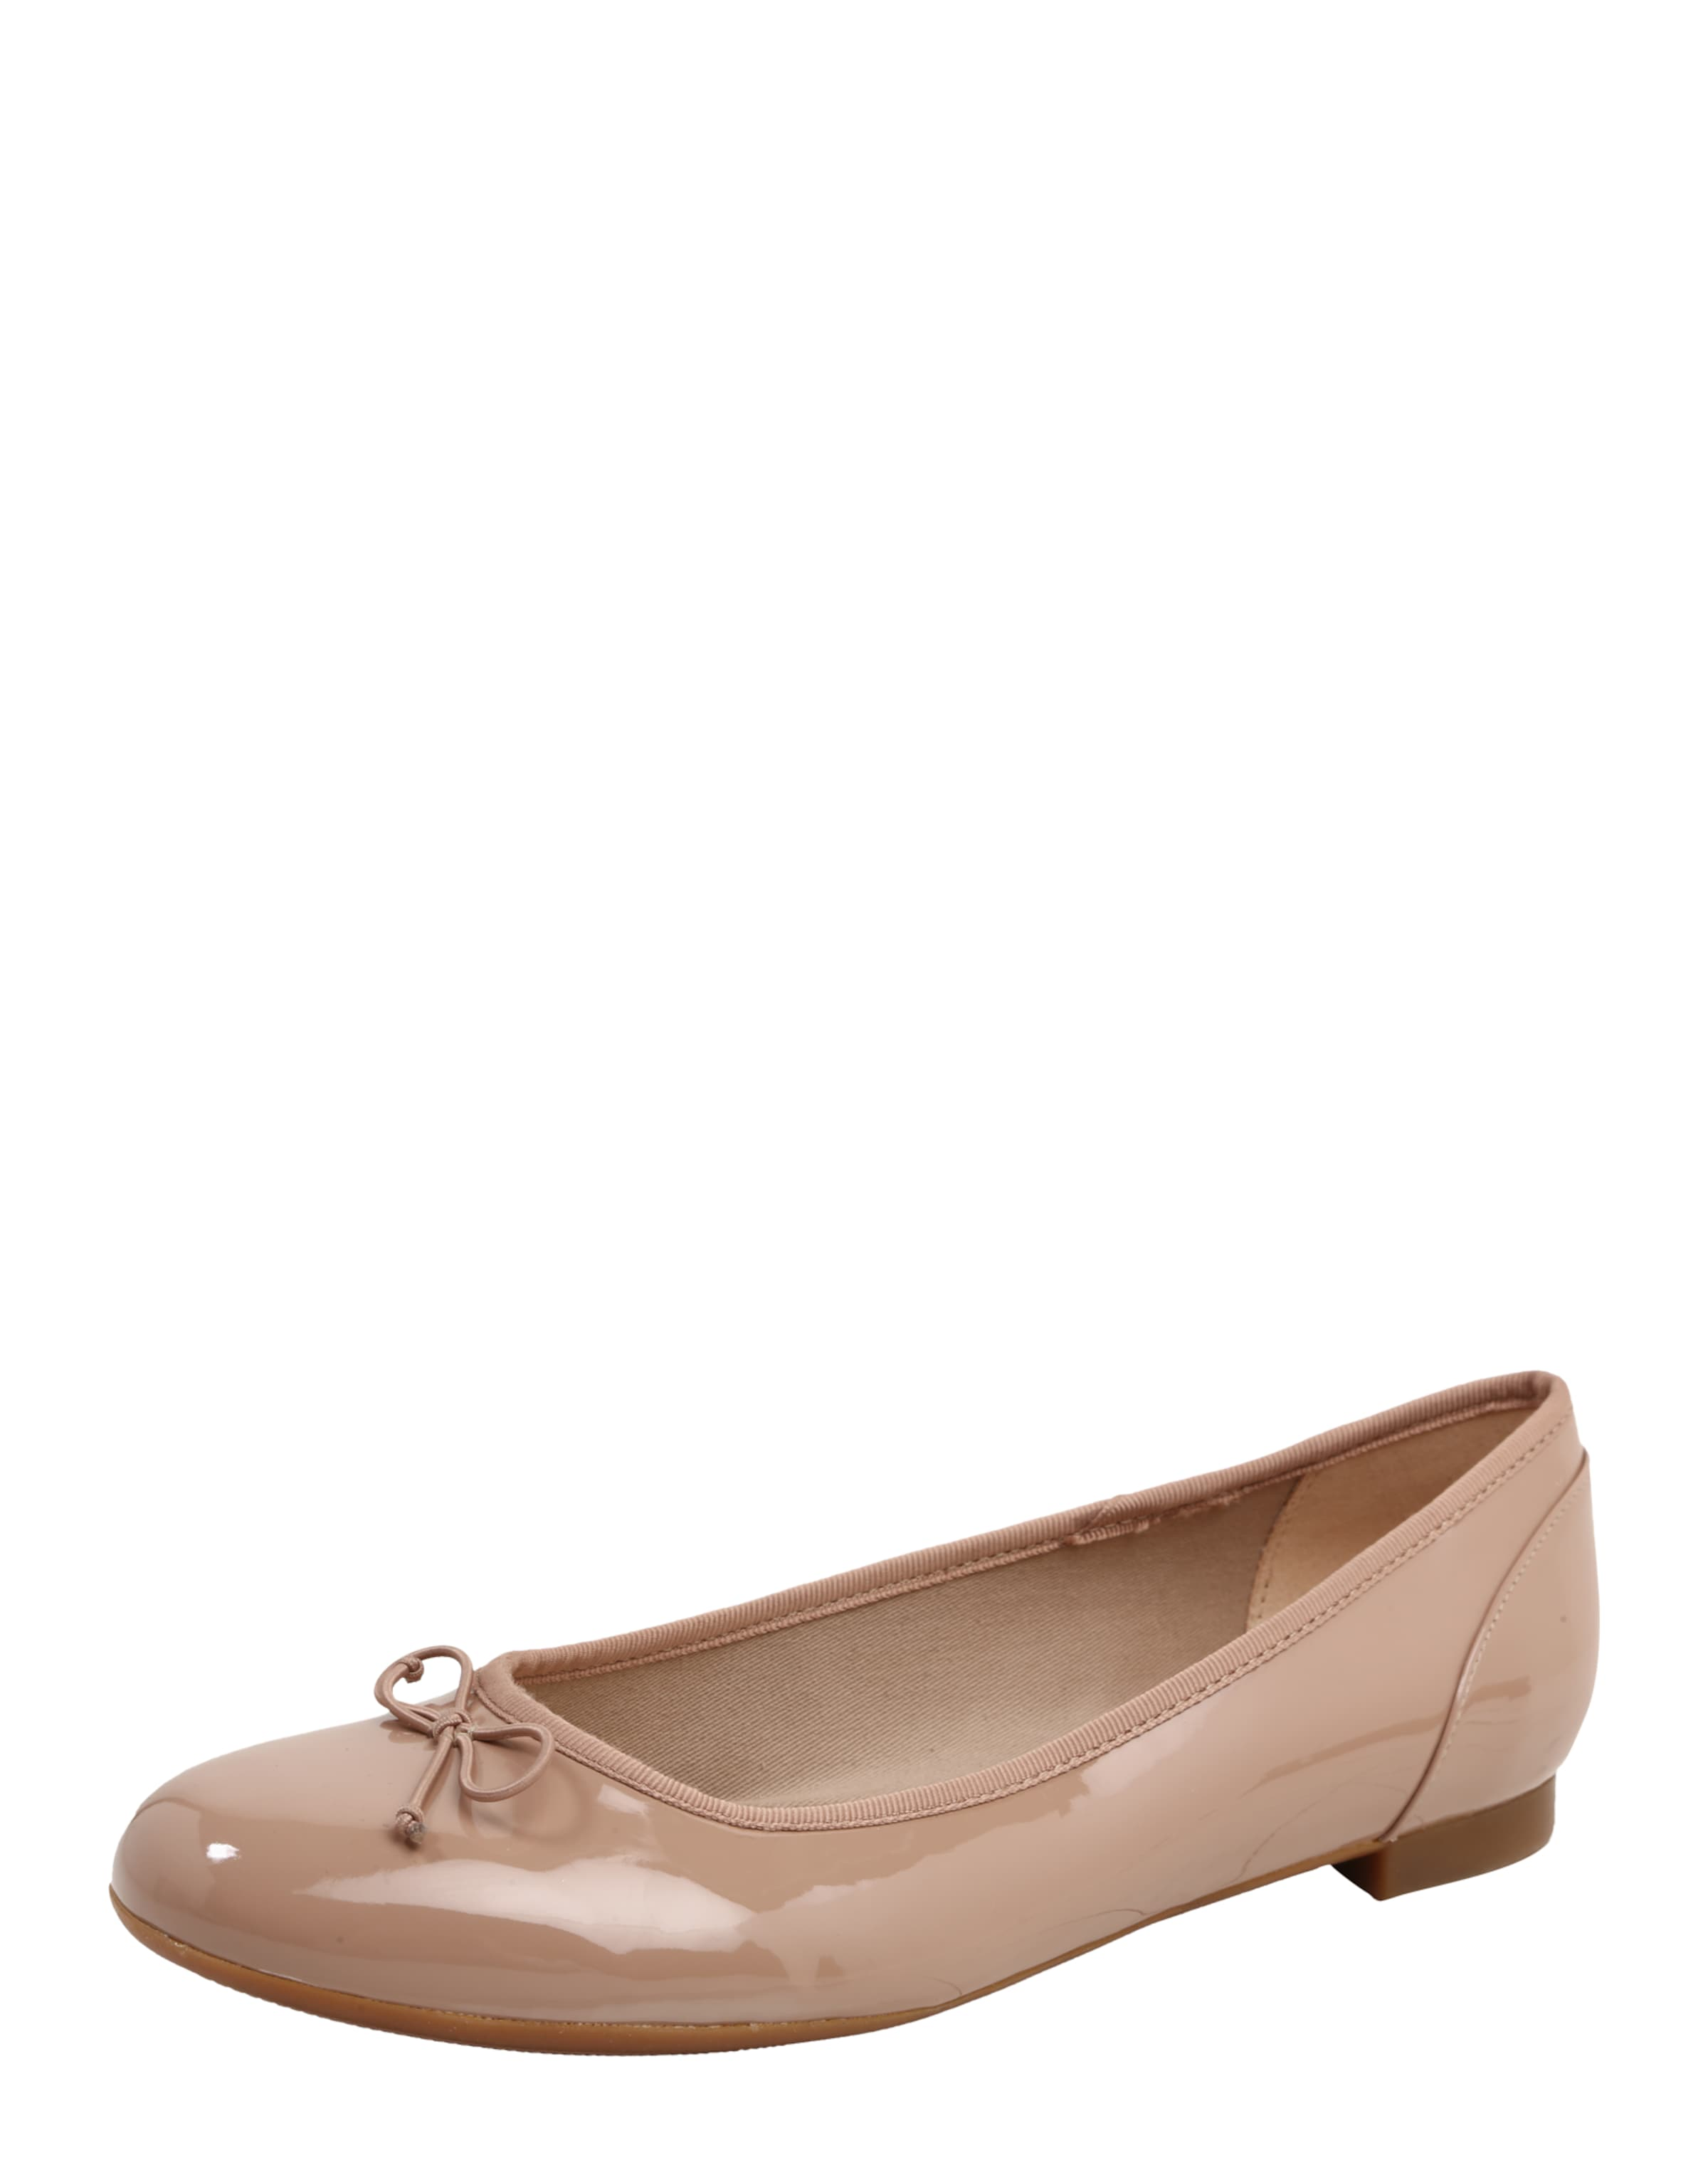 Bloom' Ballerina Clarks Nude 'couture In ZkPXOuTi